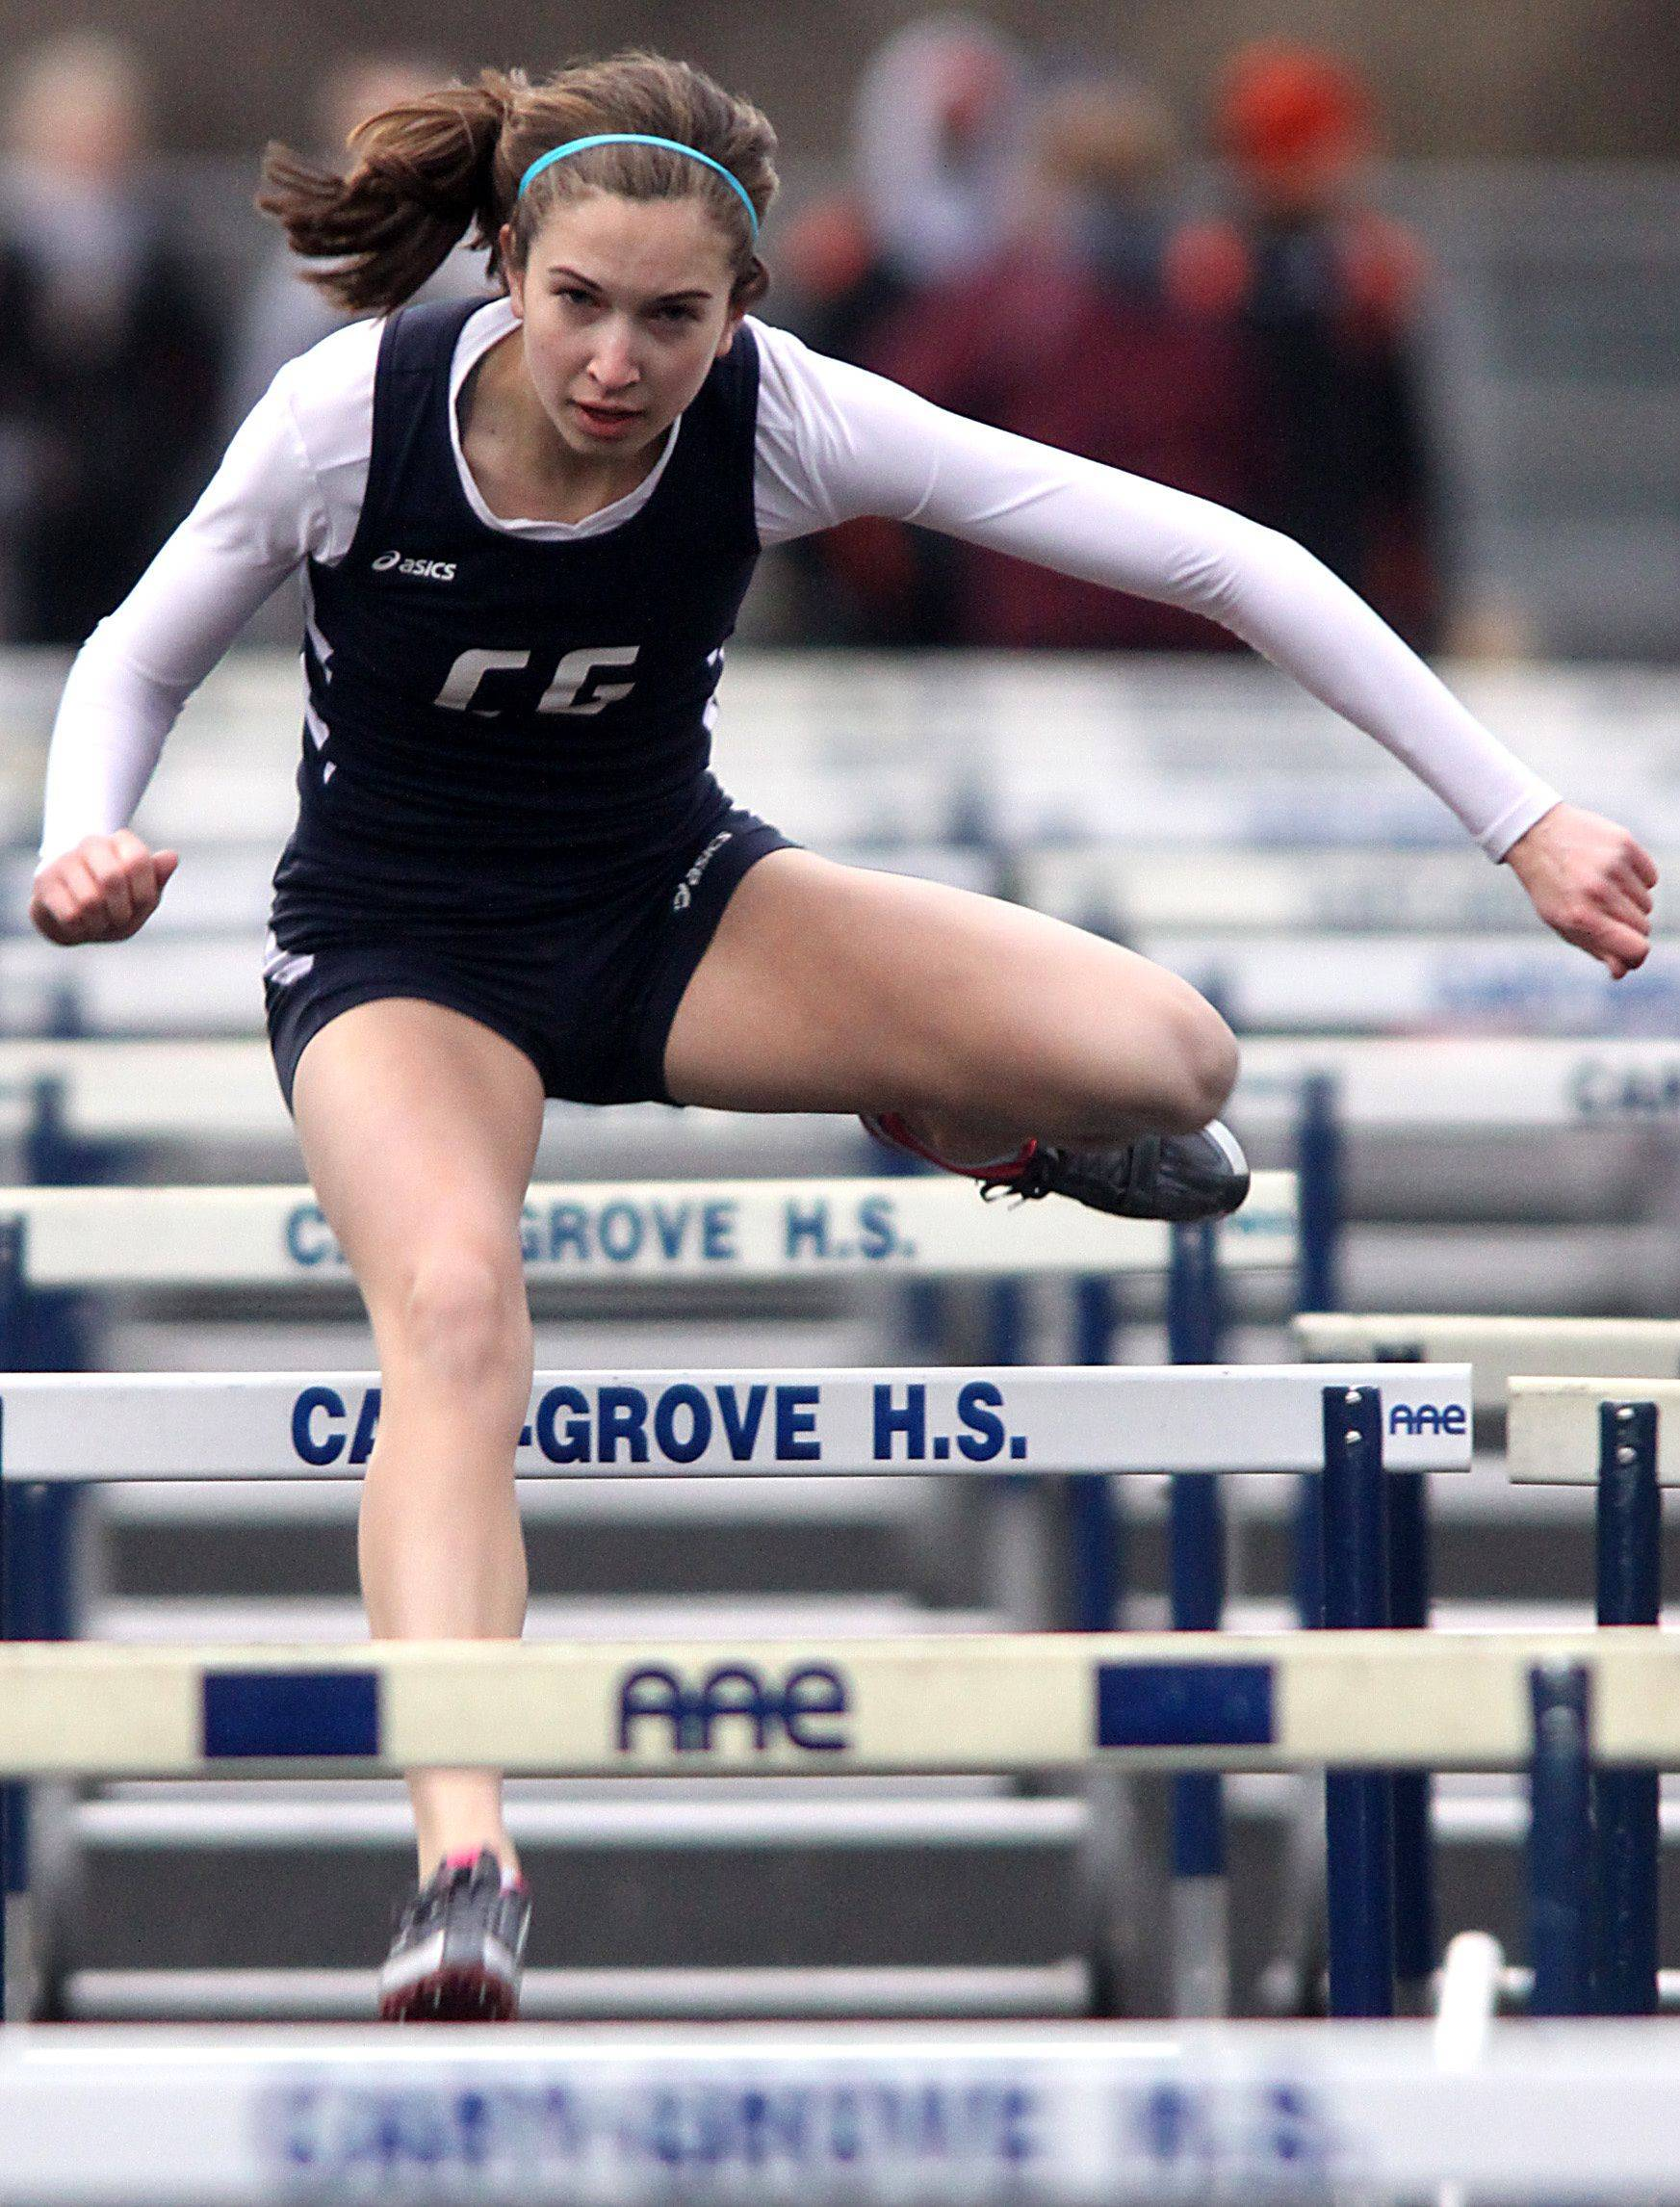 Cary-Grove's Kathie Wollney takes part in the 100-meter hurdles during the McHenry County Track Meet at Al Bohrer Field on the campus of Cary-Grove High School Thursday evening.